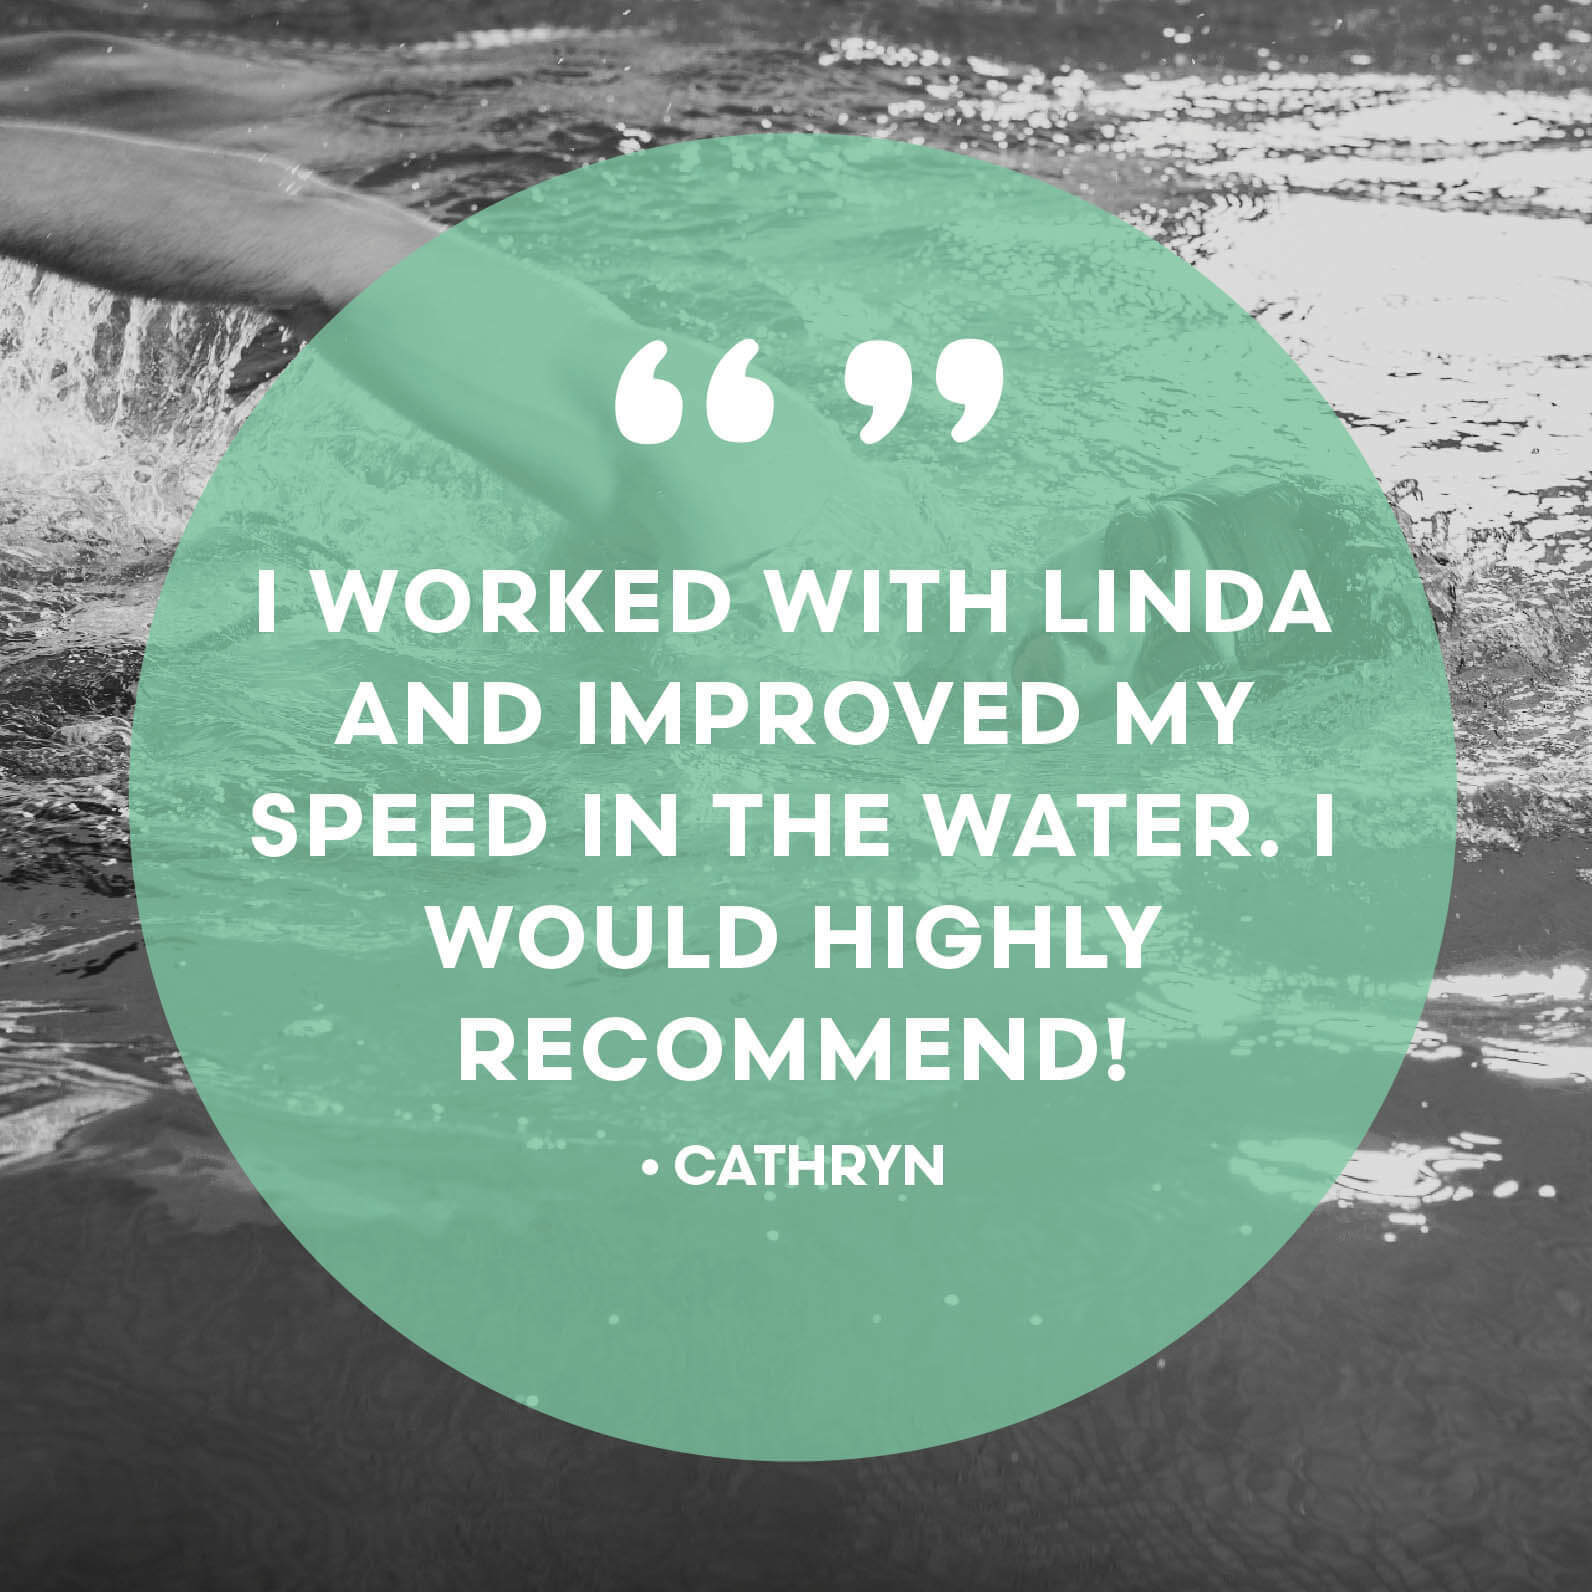 I worked with Linda and improved my speed in the water. I would highly recommend!